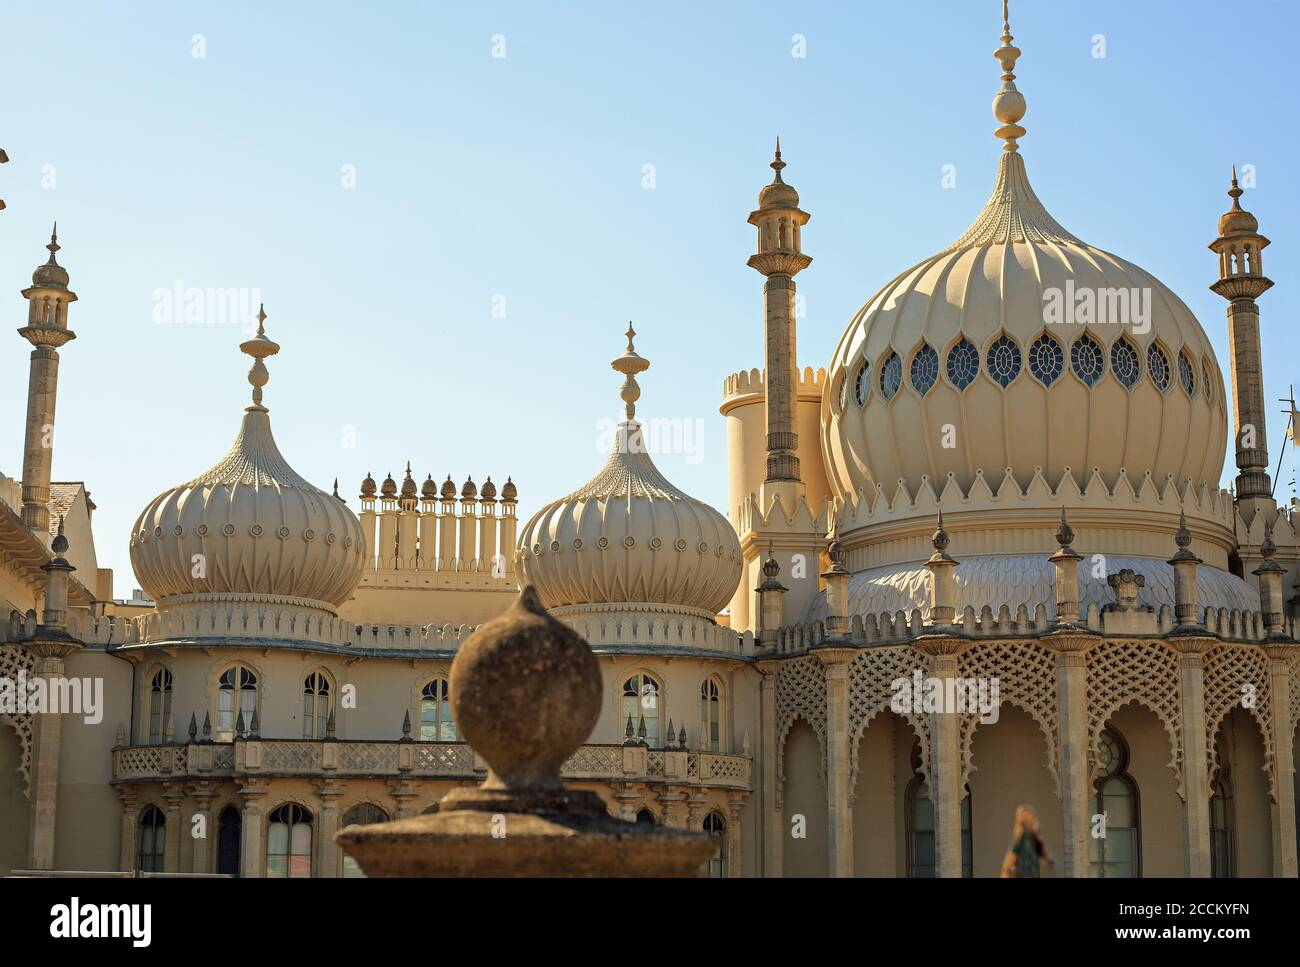 Brighton Pavilion, UK, 2020. The Pavilion was built between 1787 and 1820 for various Royals.  It is now run by a charity and is open to the public du Stock Photo